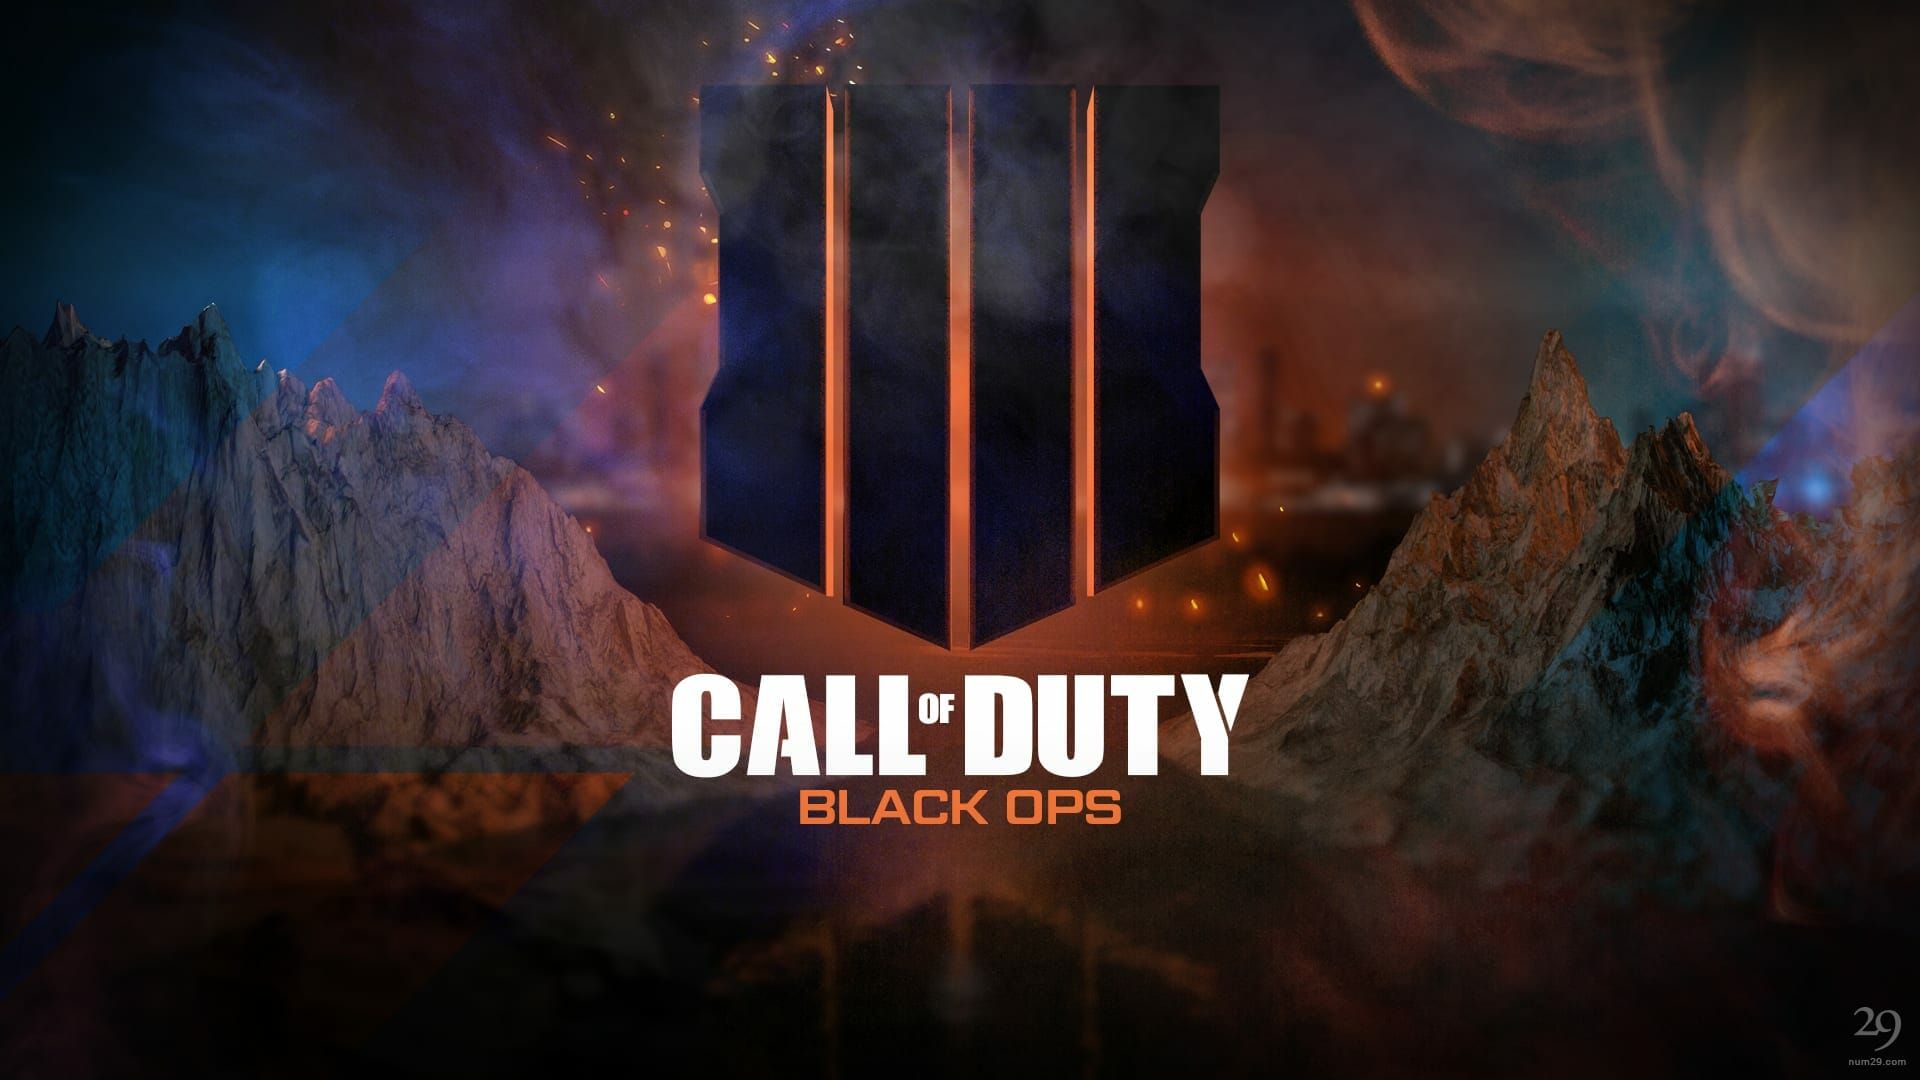 Call Of Duty Black Ops 4 Wallpapers: How To Fix Black OPS 4 High CPU Usage And Low Performance